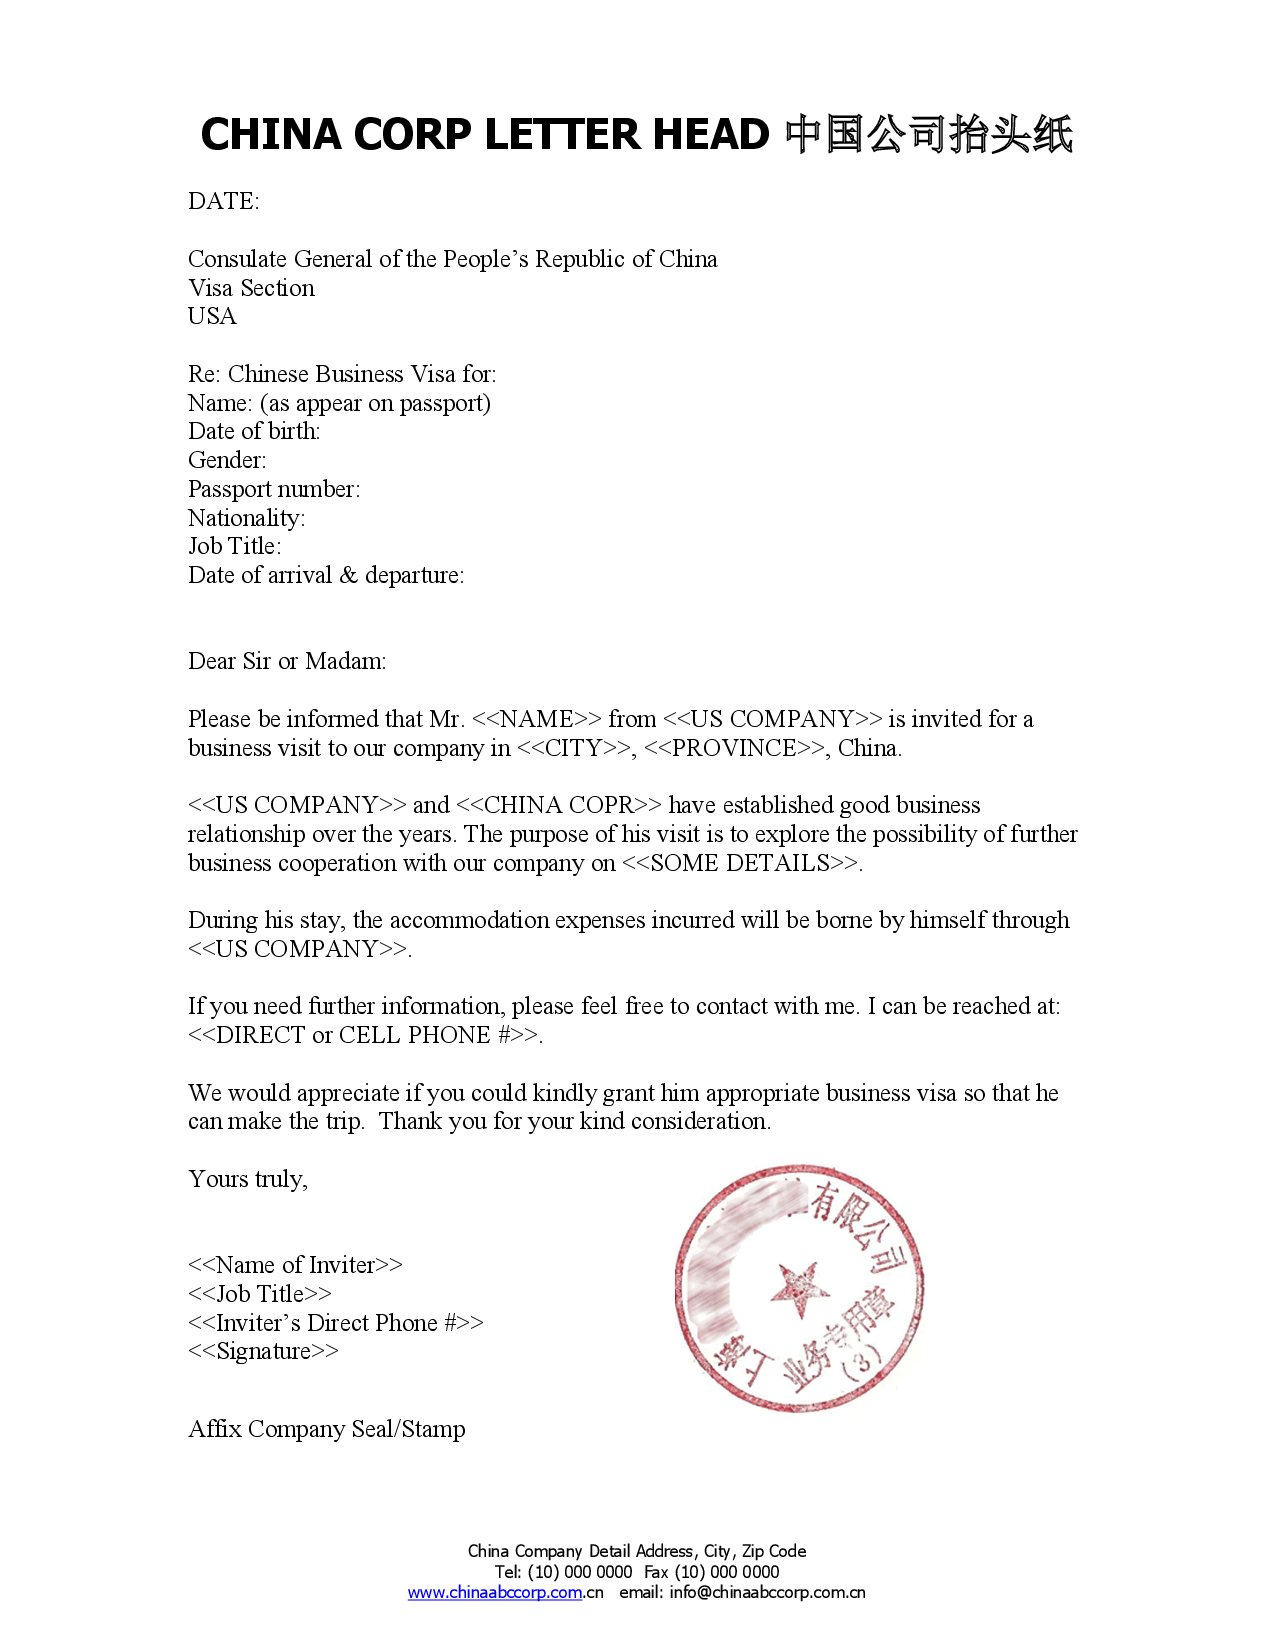 Format invitation letter for business visa to china lettervisa format invitation letter for business visa to china lettervisa invitation letter application letter sample spiritdancerdesigns Images